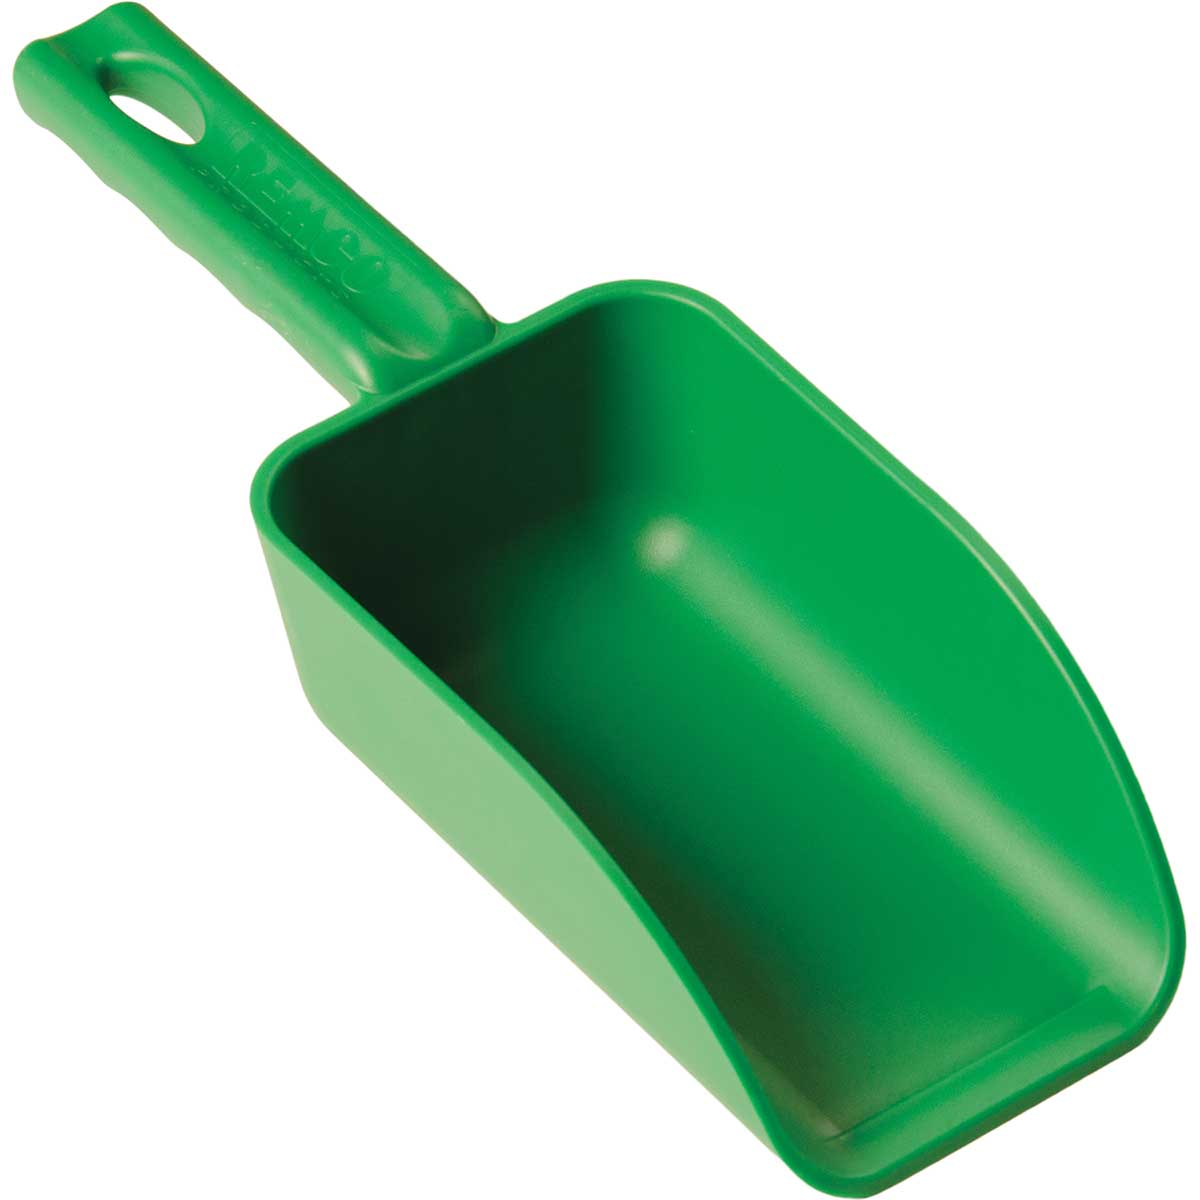 Remco 16 oz. Hand Scoop